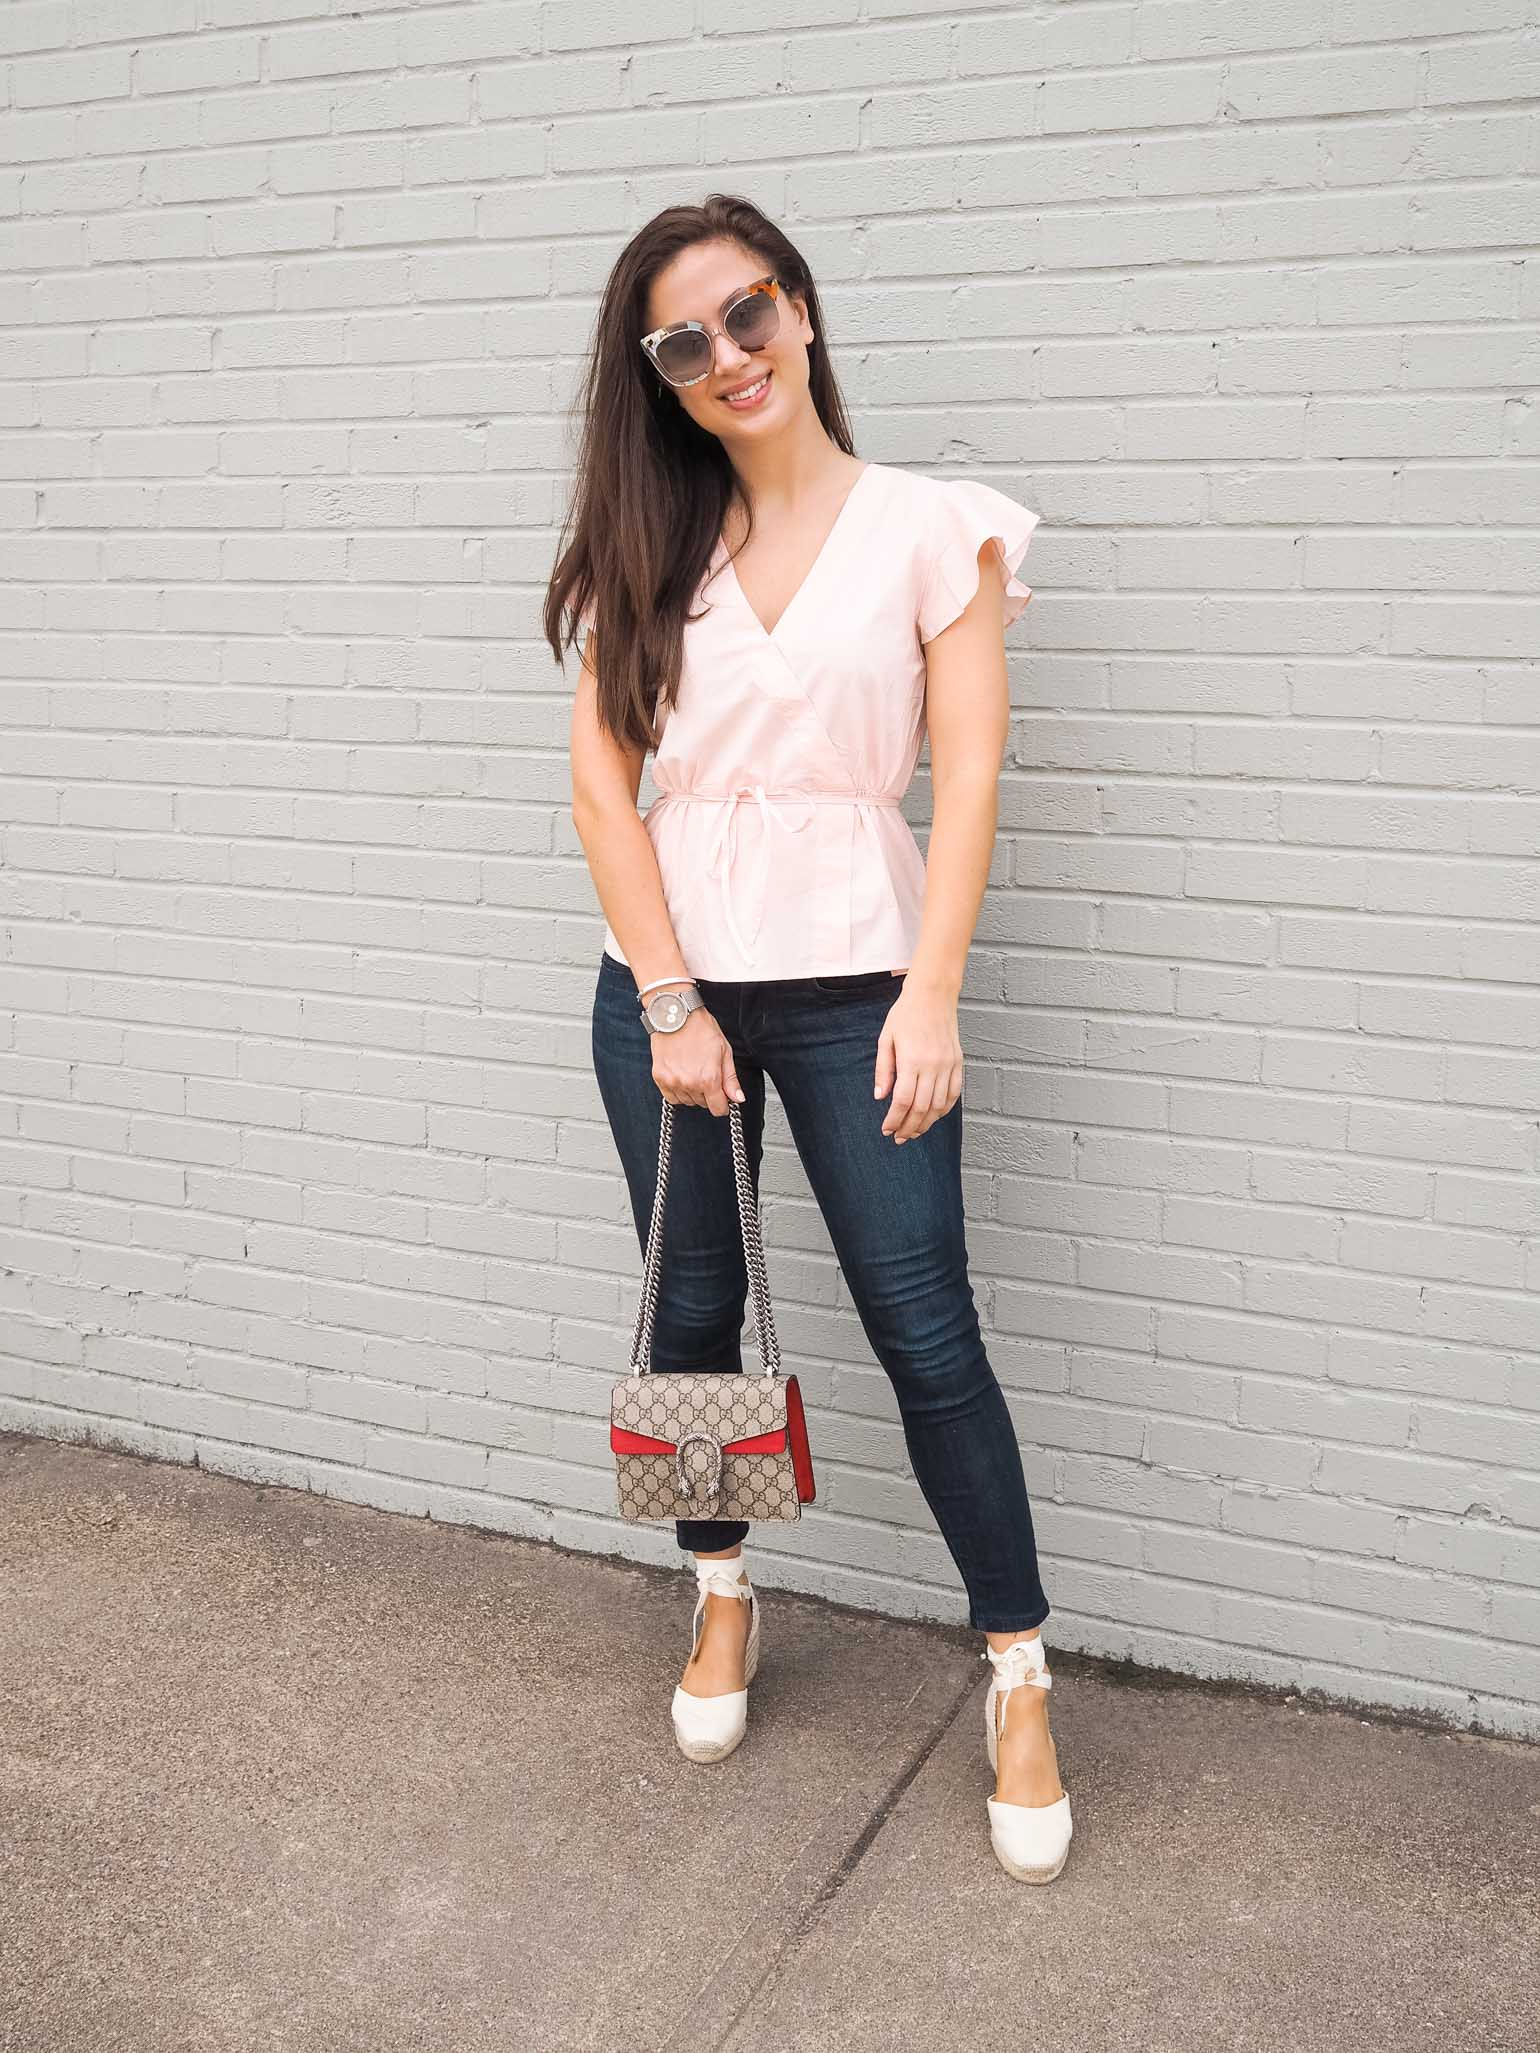 f75512194853 Transition your Summer Outfit From Day to Night  Ruffle Sleeve Blouse ·  Dallas fashion blogger style  J.Crew ruffle sleeve blouse